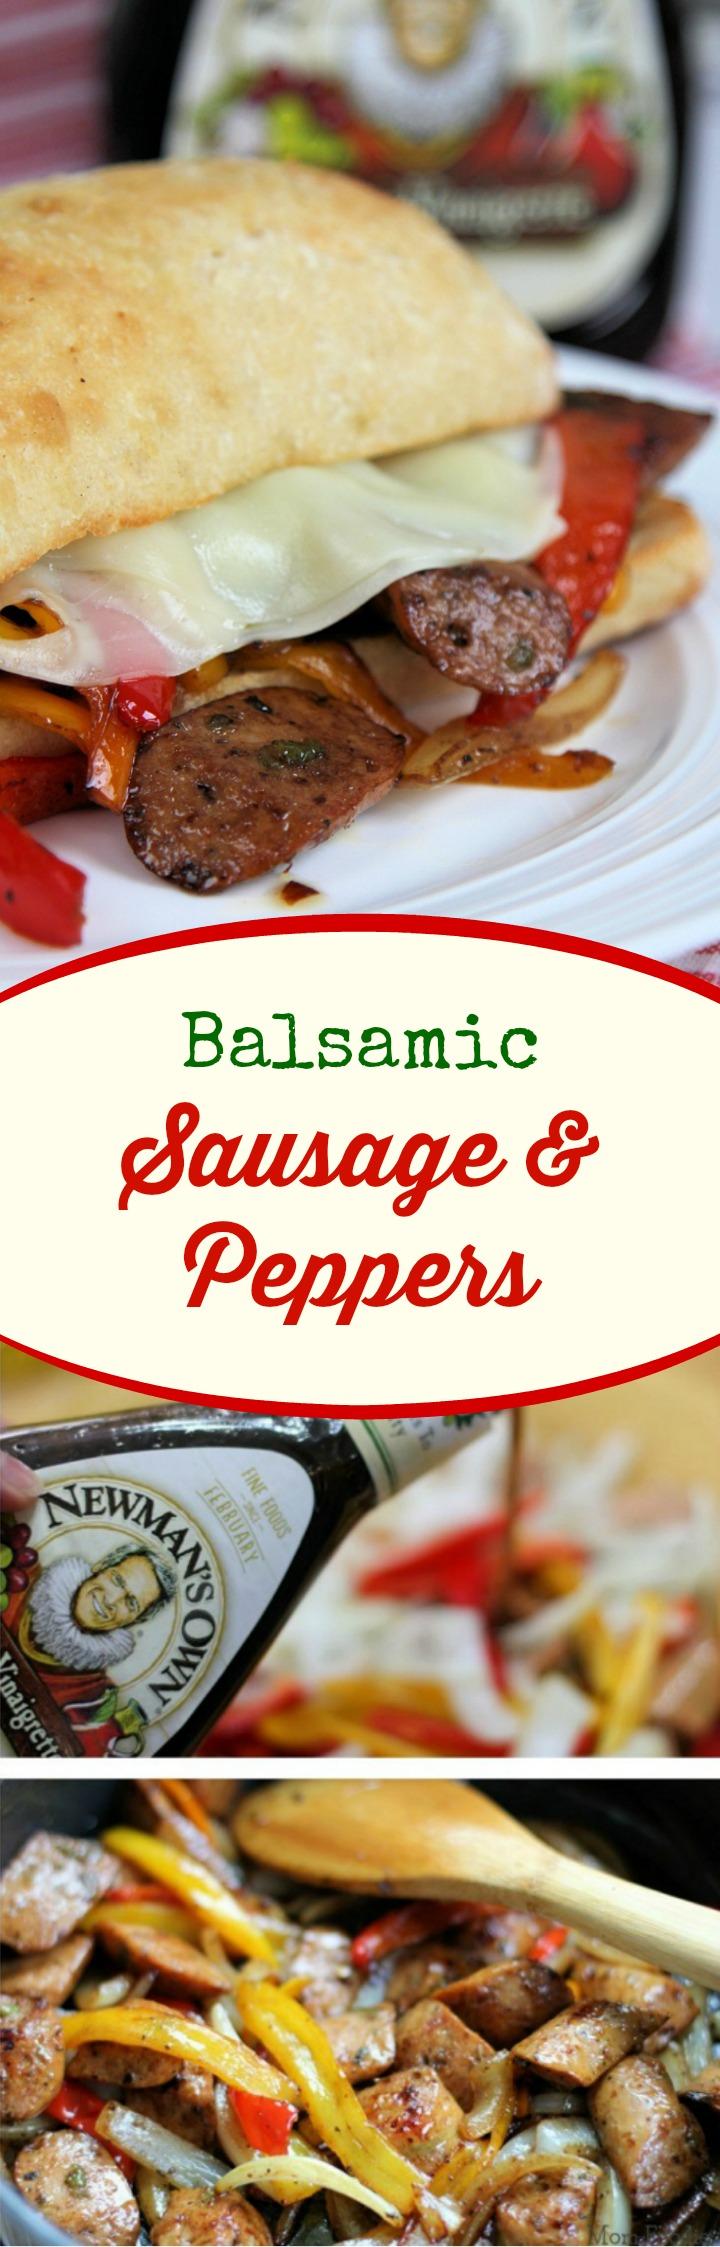 Balsamic Sausage & Peppers